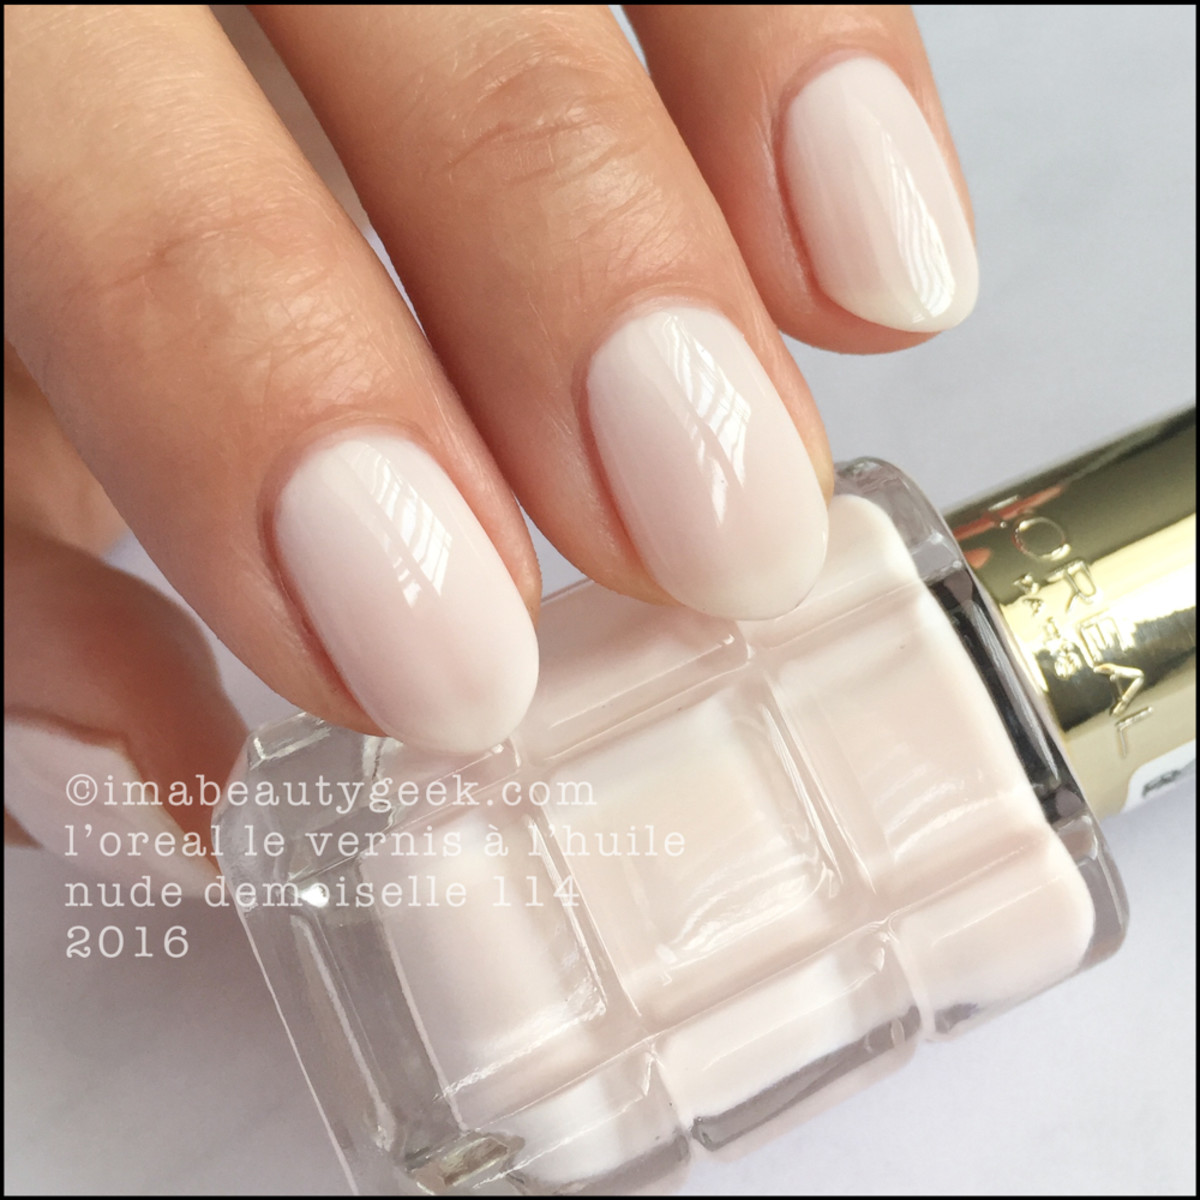 LOreal Nude Demoiselle 114_LOreal Vernis a LHuile Nail Polish Swatches